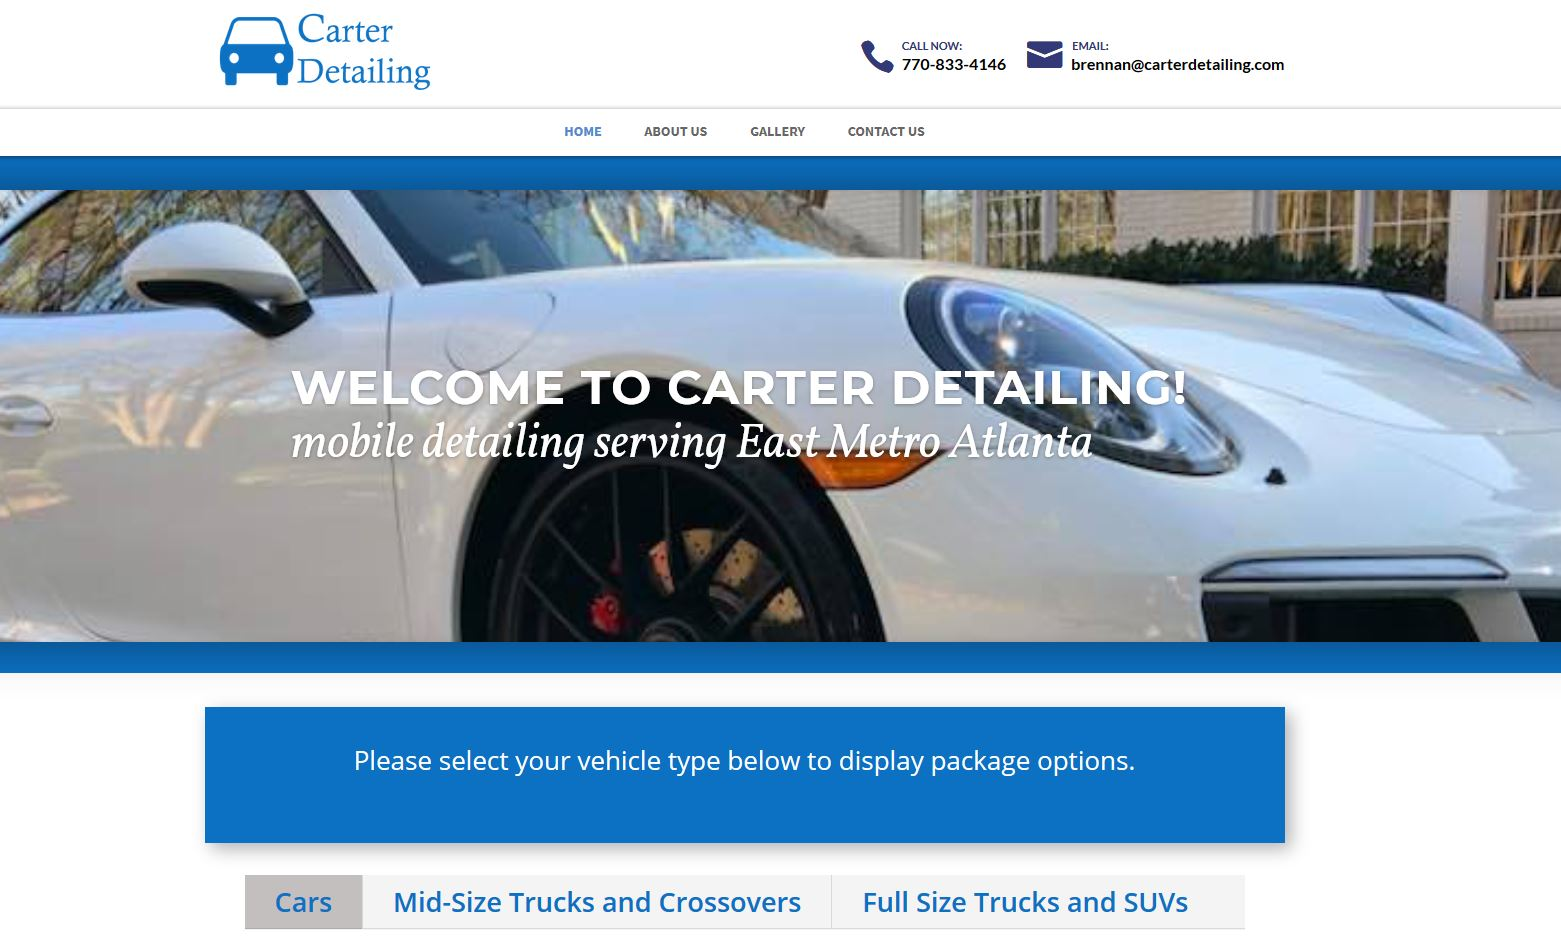 Carter Detailing is locally owned and operated by Brennan Carter serving Athens, Loganville, Monroe, Oconee, Watkinsville, Walton, Newton, Conyers, Covington and Rockdale.